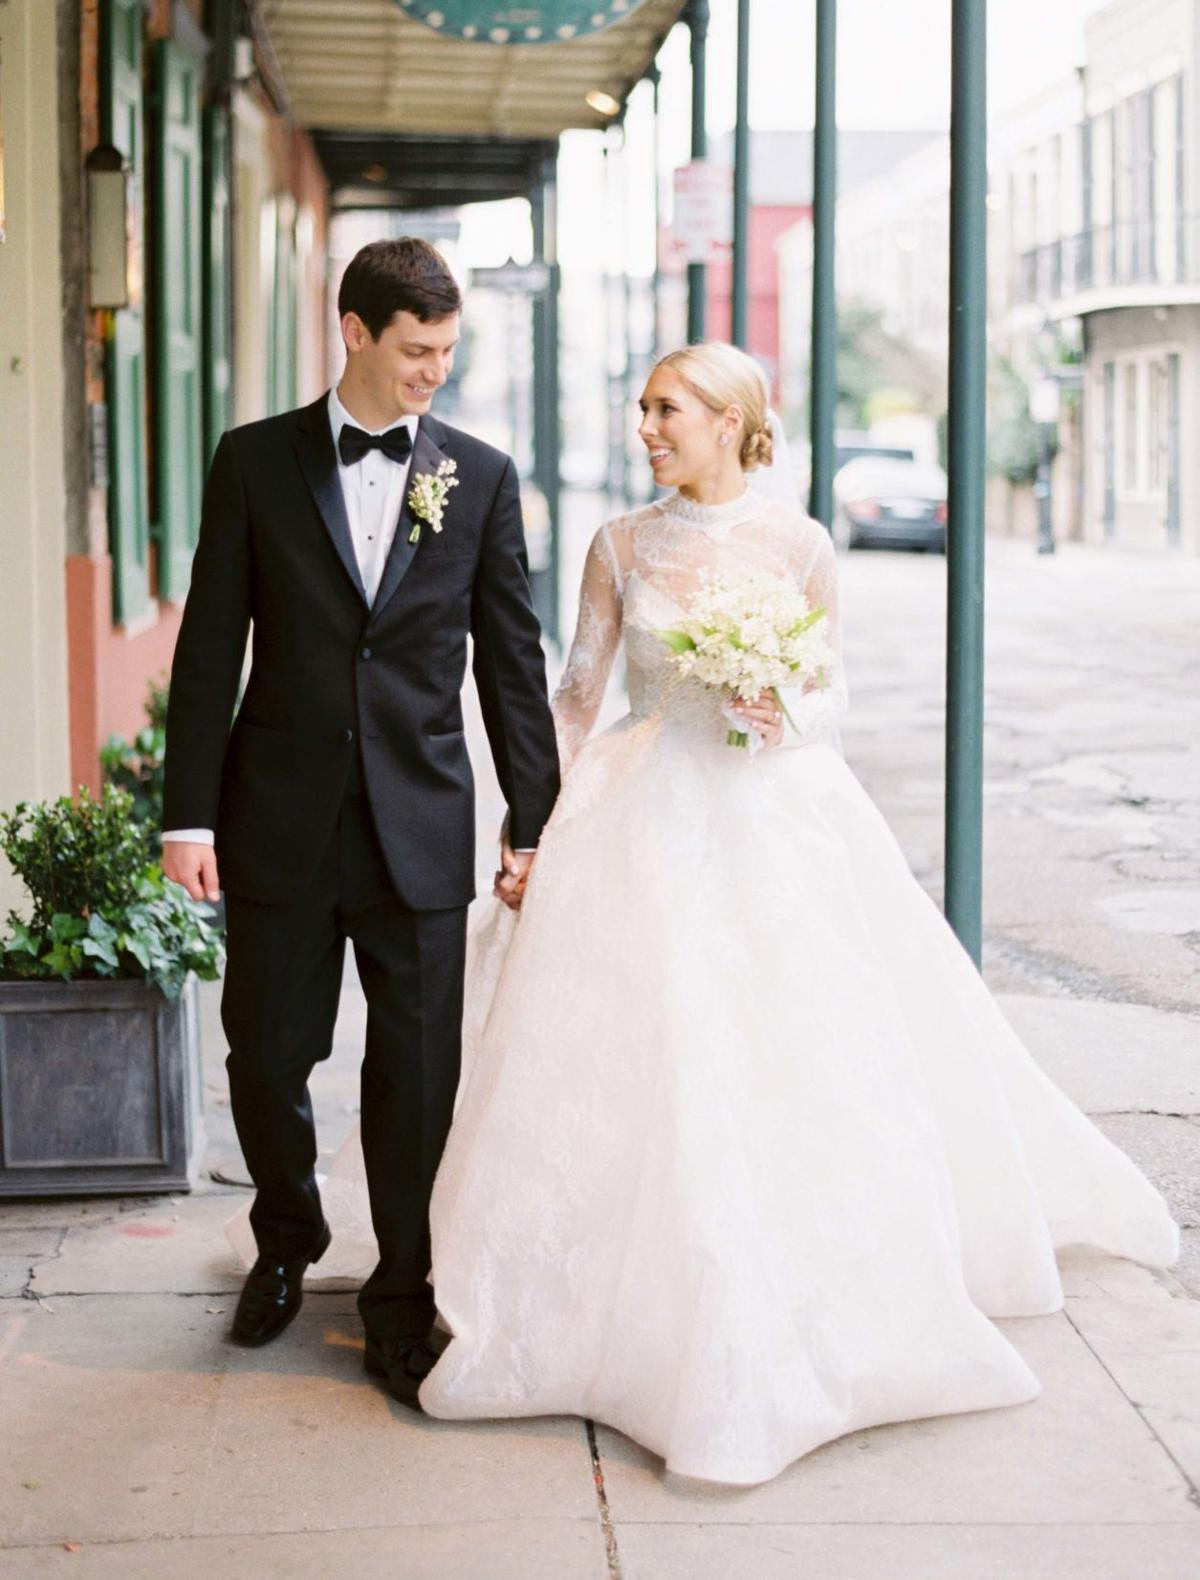 MilletLoupewedding.couplefrenchquarter.jpg